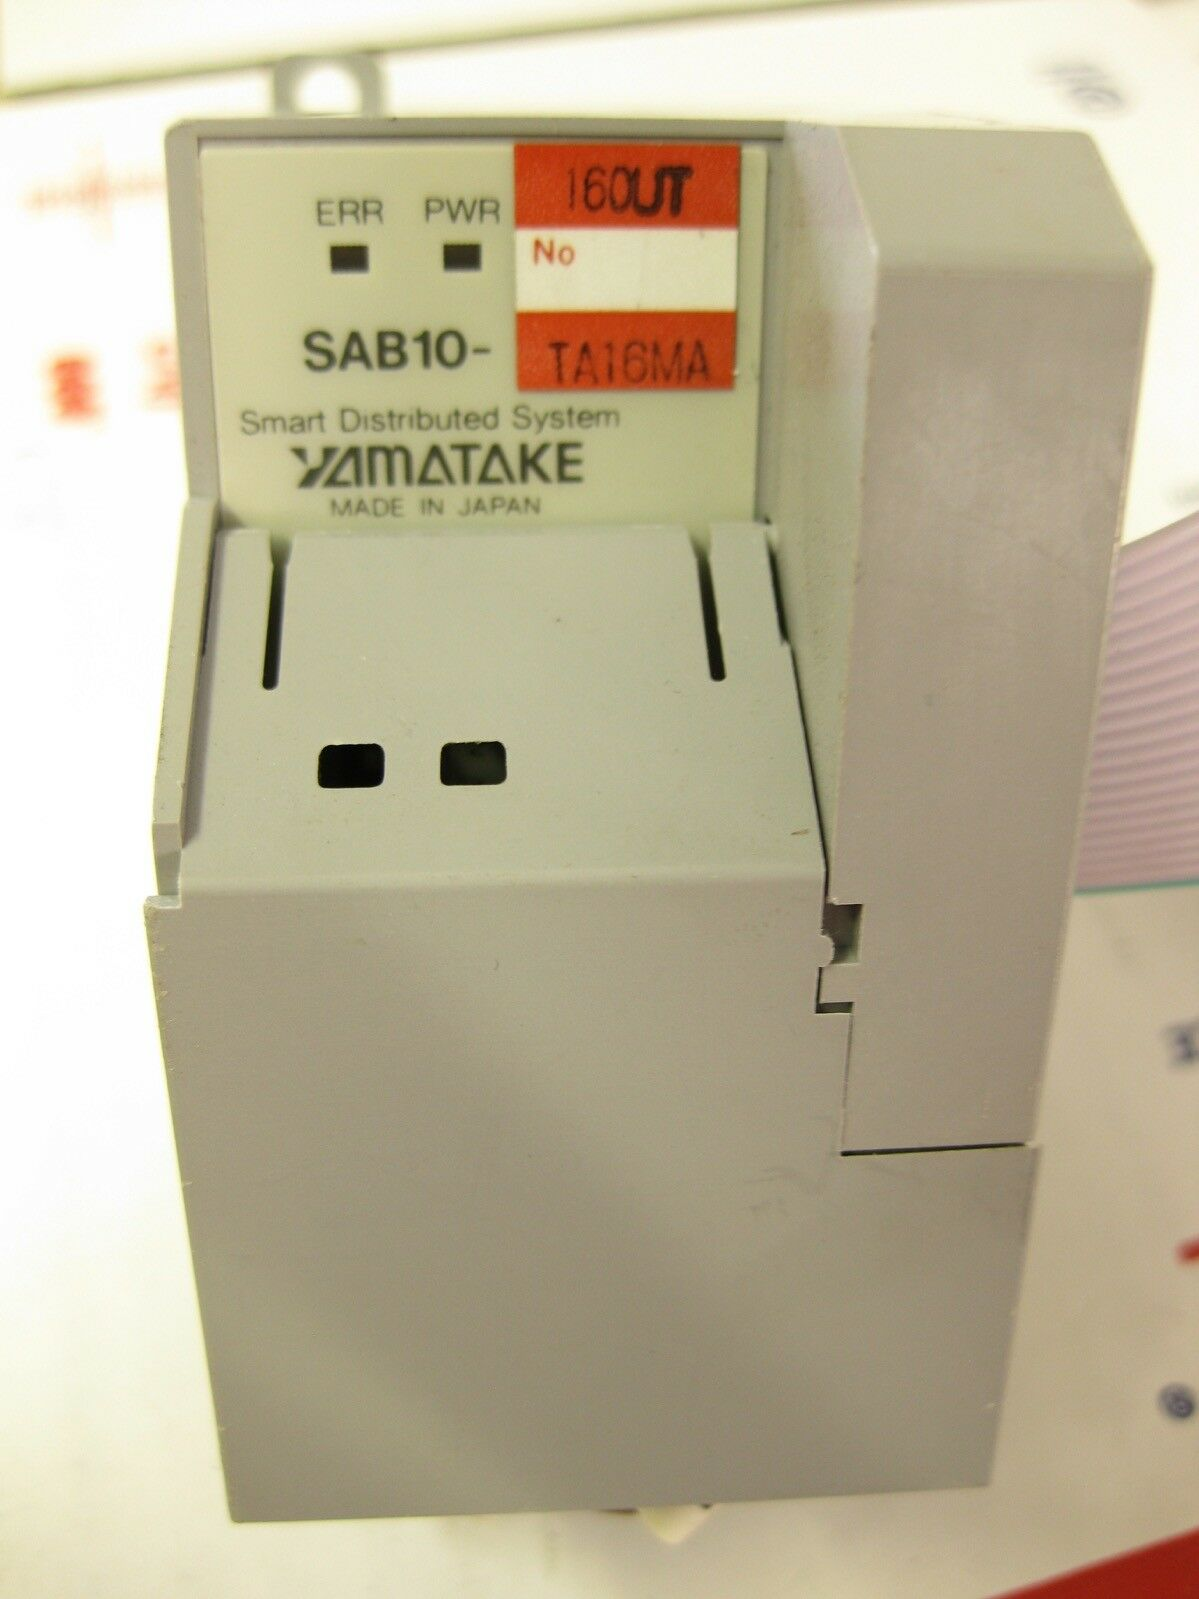 Yamatake Smart Distributed System SAB10-TA16MA 16OUT AZBIL NORTH AMERICA PLC